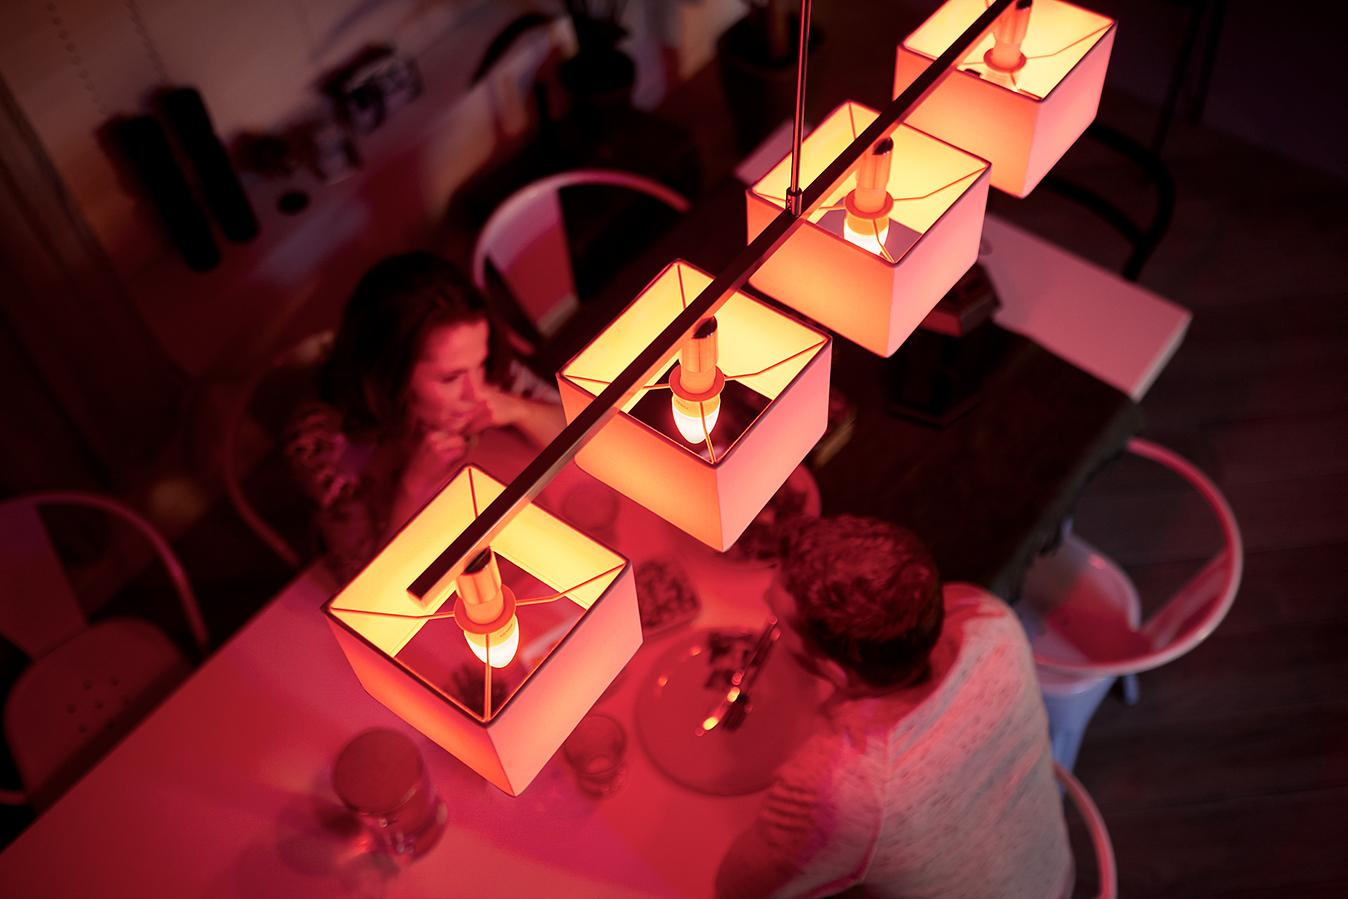 Both versions of the Philips Hue candle light bulb feature a temperature range of 2,200k to 6,500k